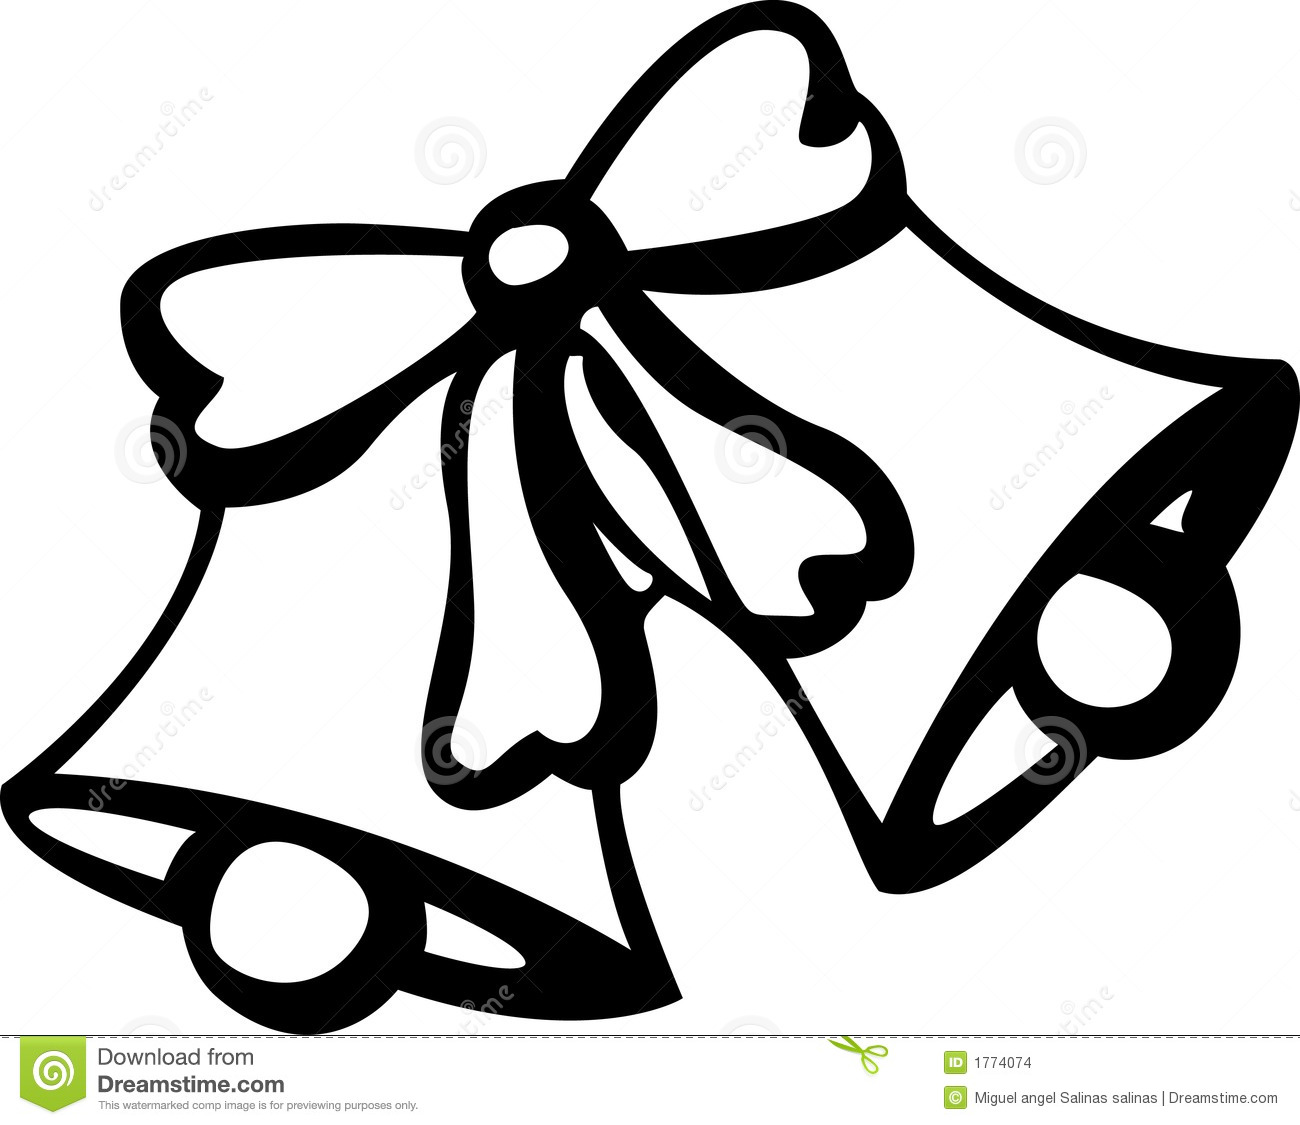 wedding bell drawing at getdrawings com free for personal use